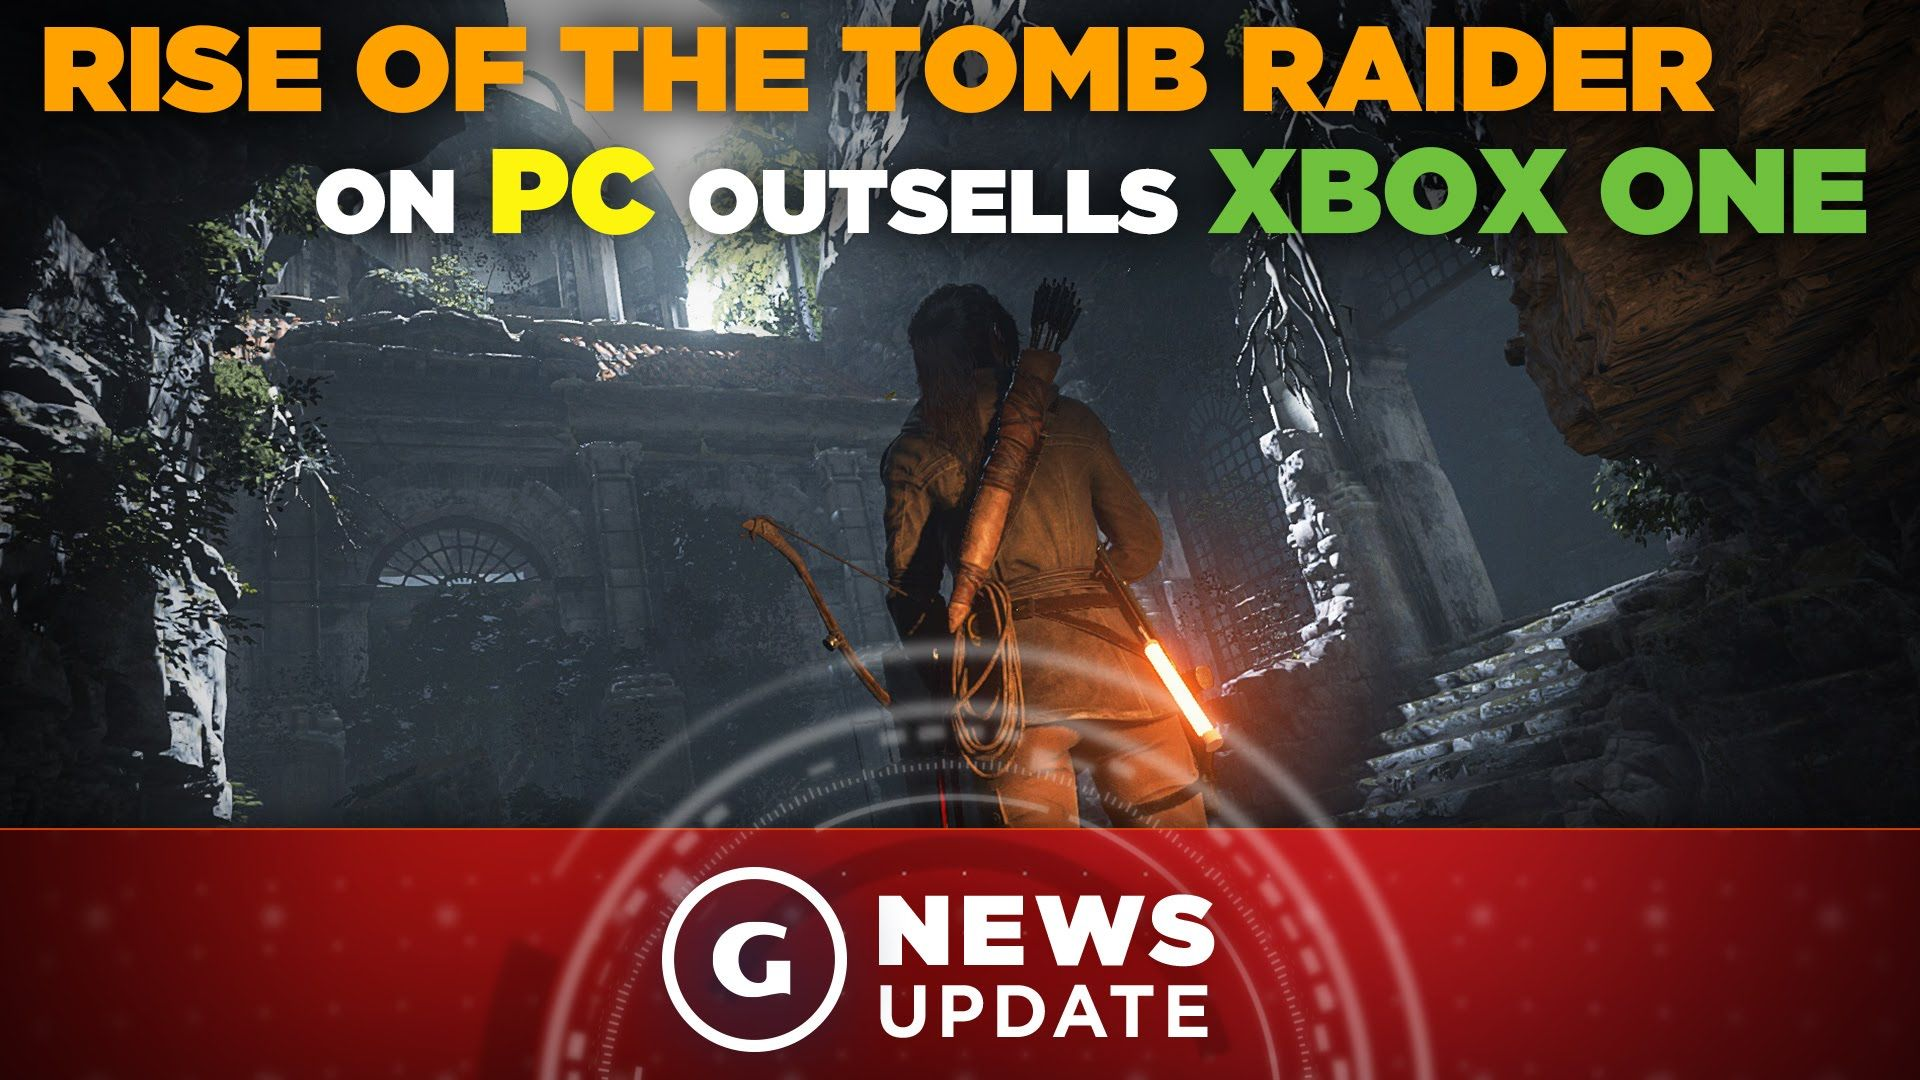 Rise of the Tomb Raider First-Month PC Sales Almost Triple Xbox One Debut - GS News Update | GS News Update | Pinterest | Xbox one, Xbox and Raiders